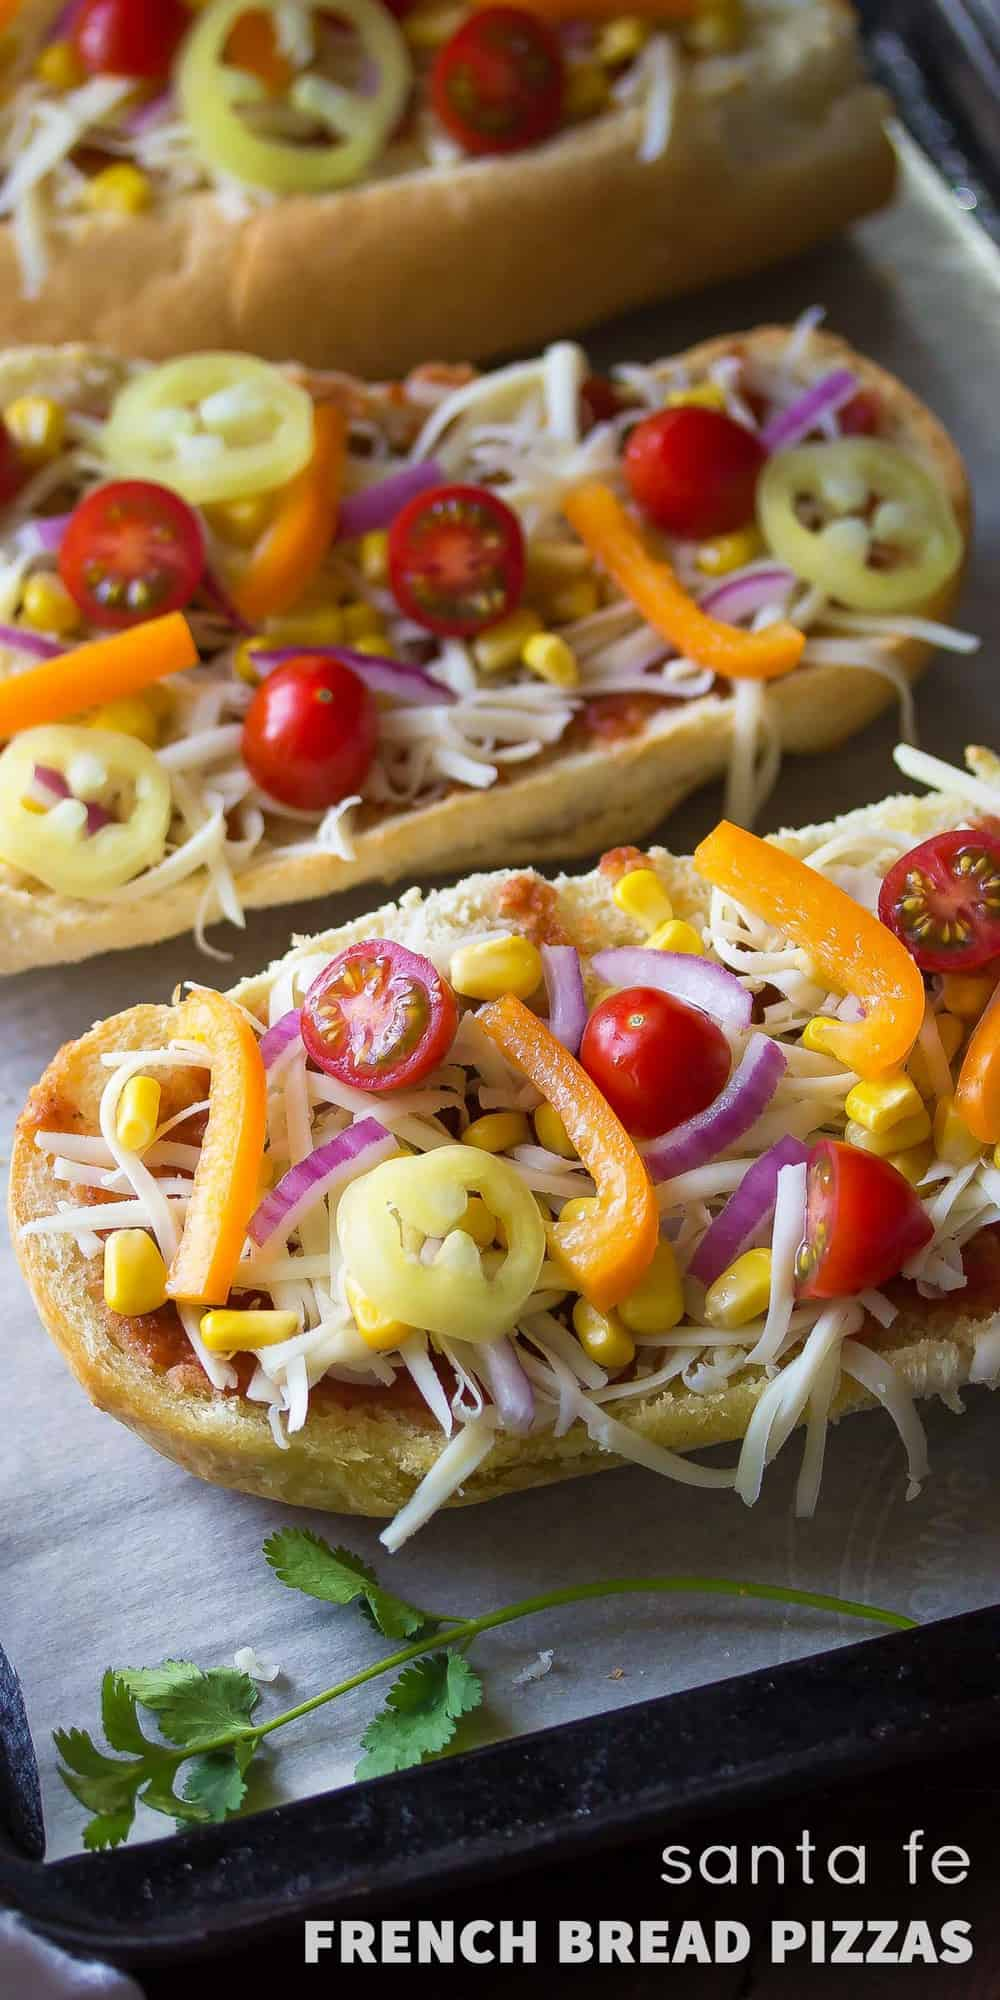 Santa Fe French Bread Pizza, topped with salsa, corn, chiles, peppers, tomatoes and cheese! Ready in under 30 minutes!